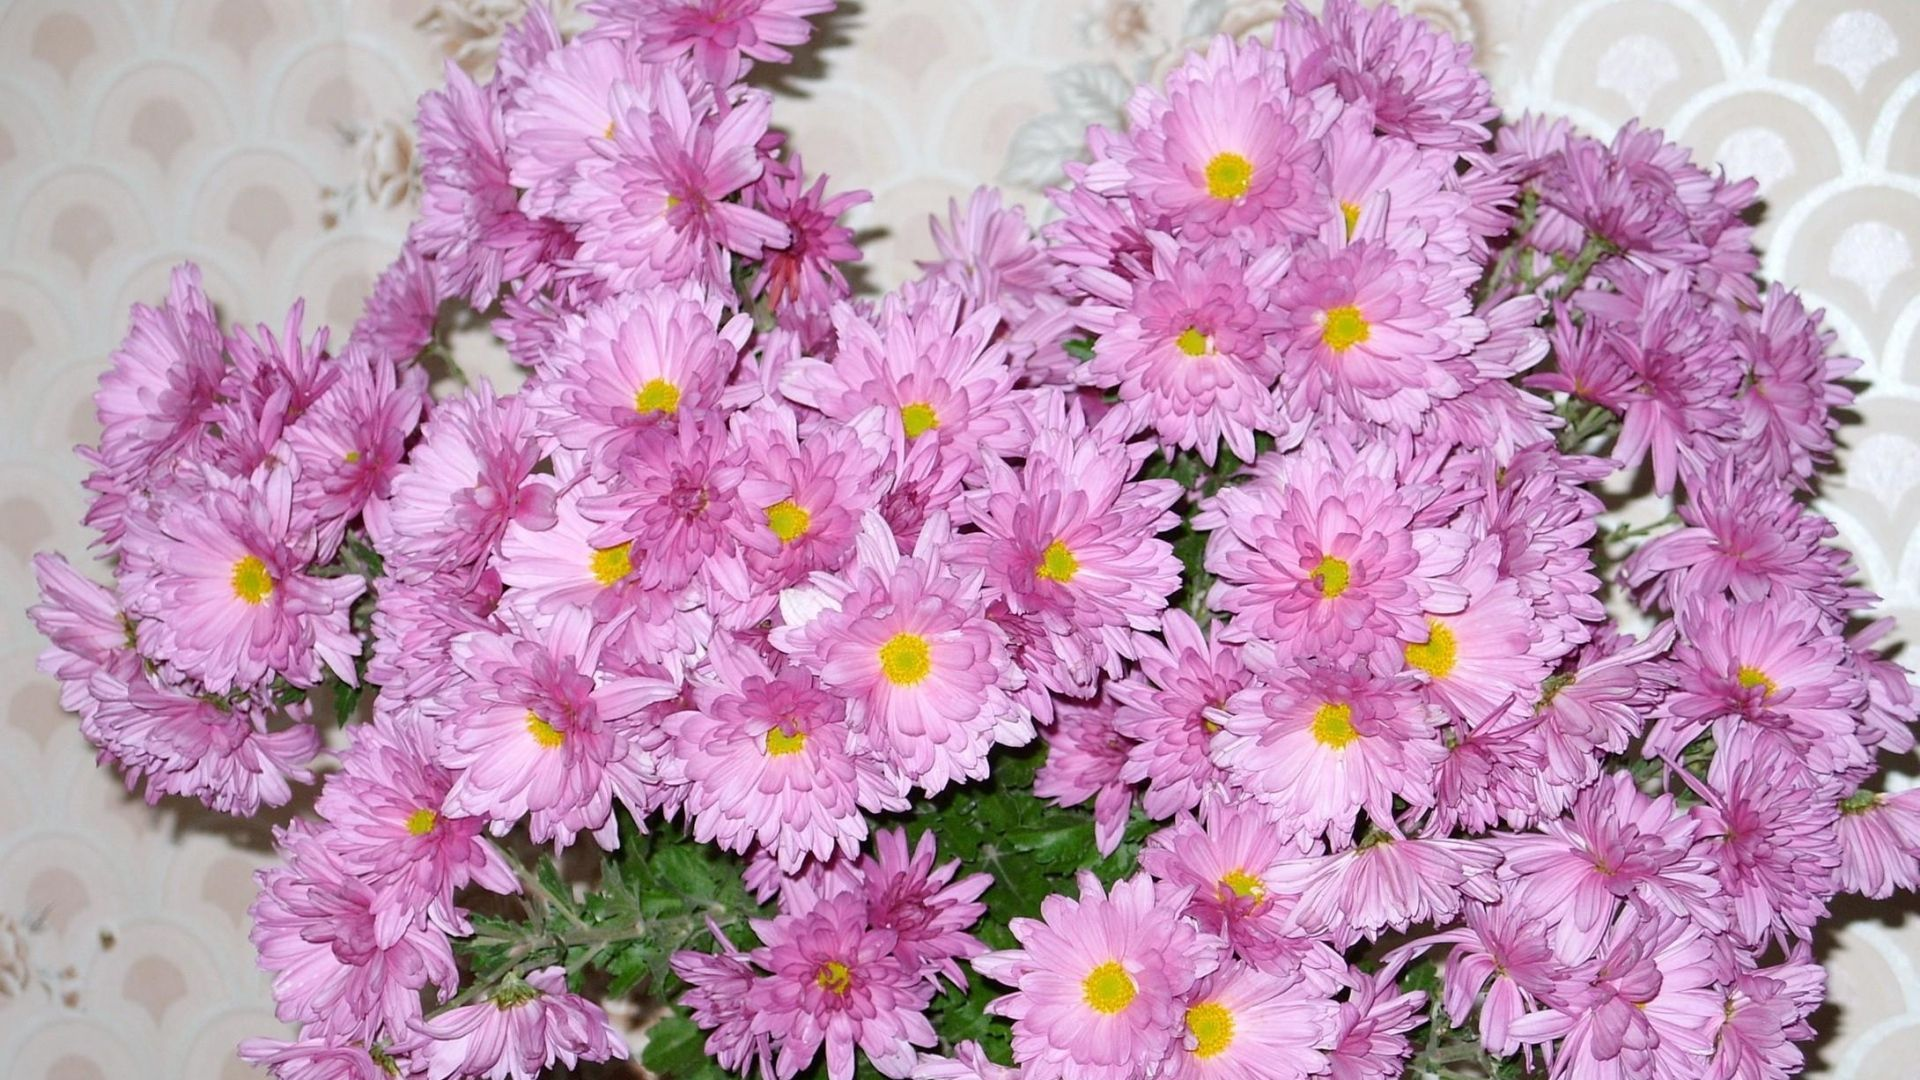 Stunning Aster Flowers Bouquet Wall Hd Images Wallpaper